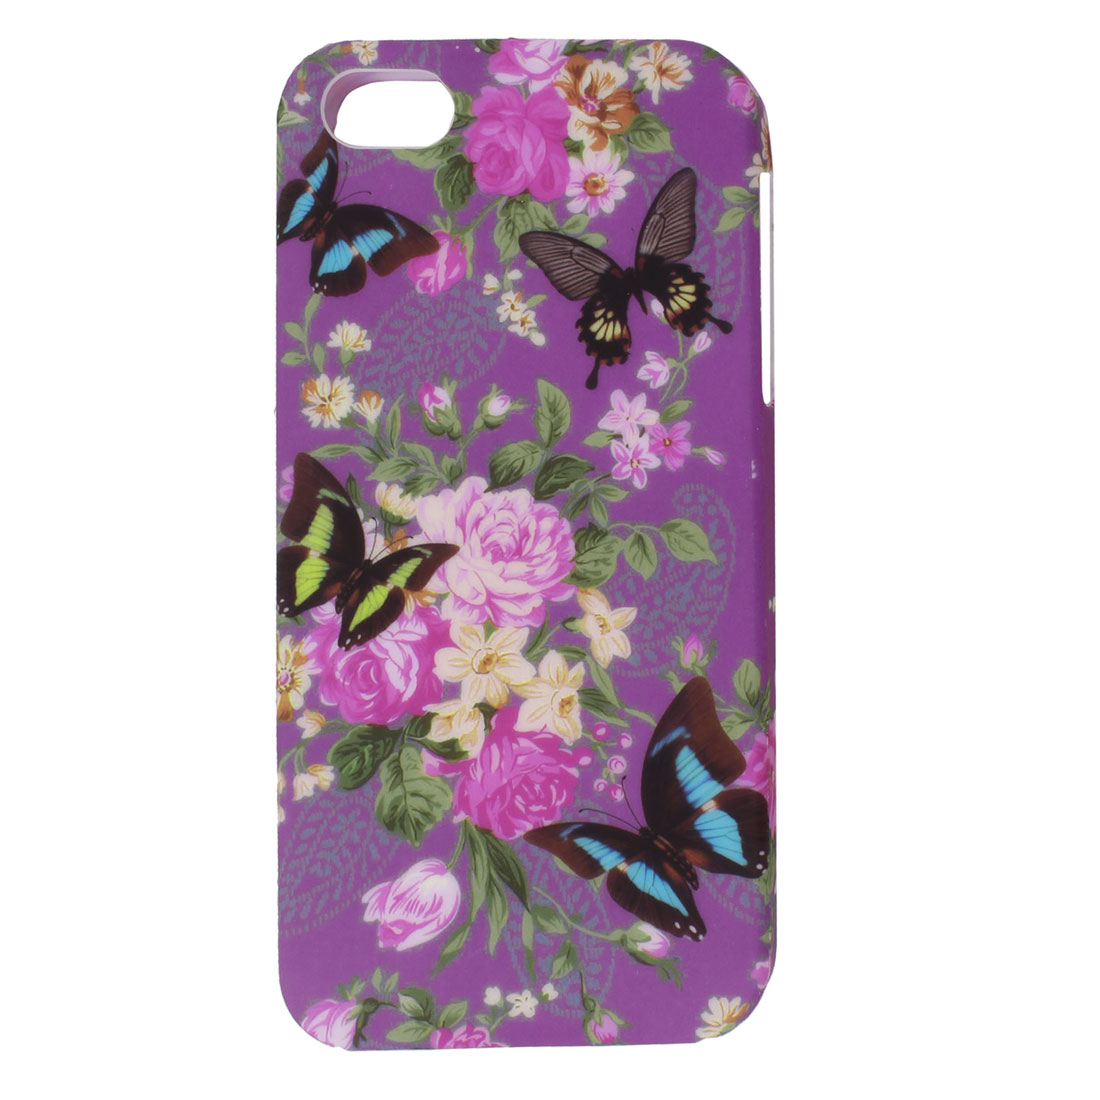 Colorful Butterfly Flower Pattern TPU Soft Case Cover for Apple iPhone 5 5G